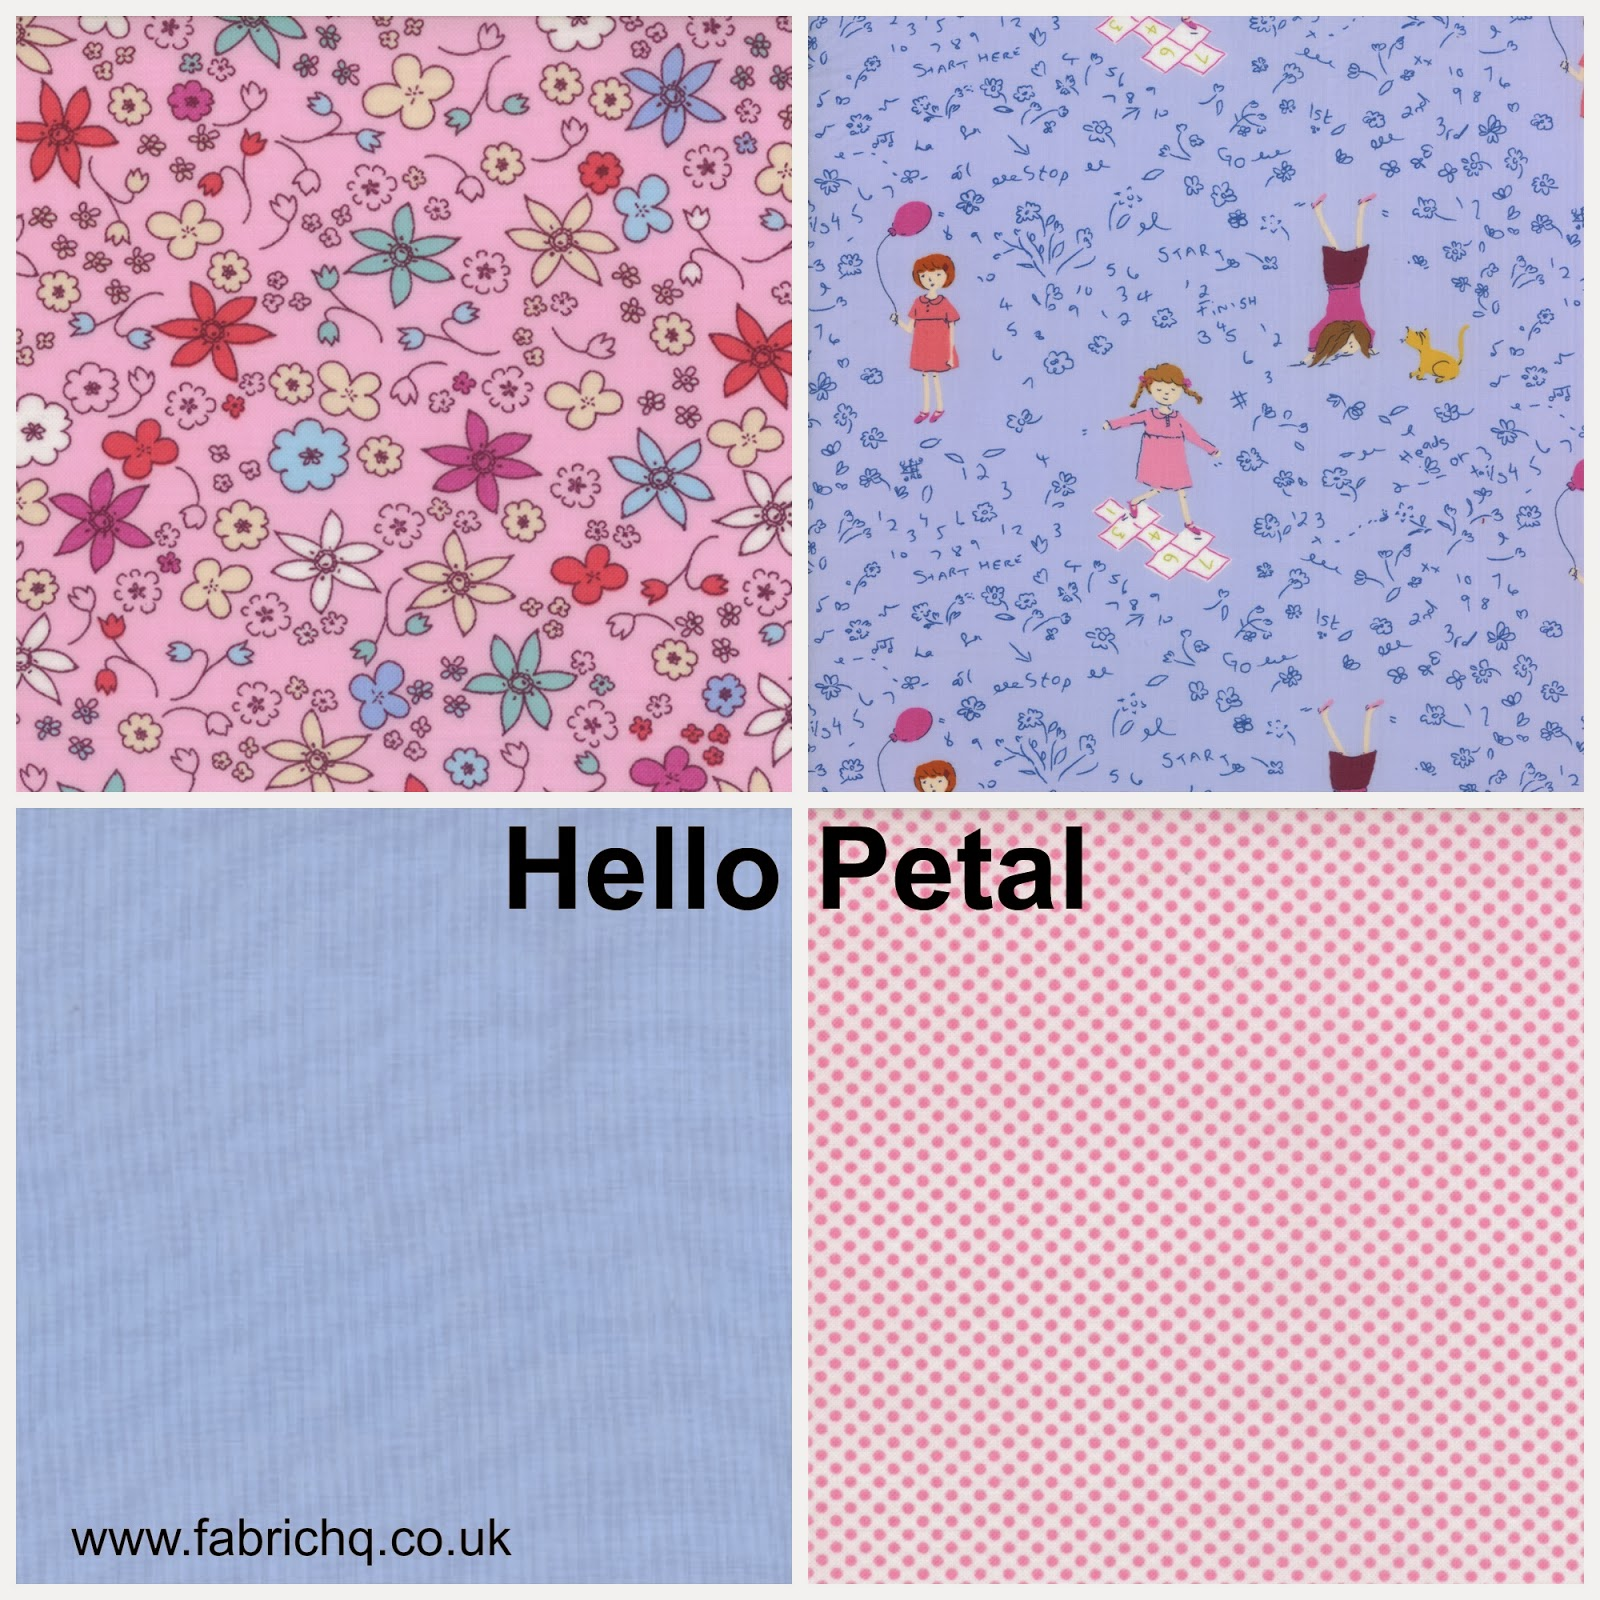 http://www.fabrichq.co.uk/Hello%20Petal%20by%20Annela%20Hoey.aspx